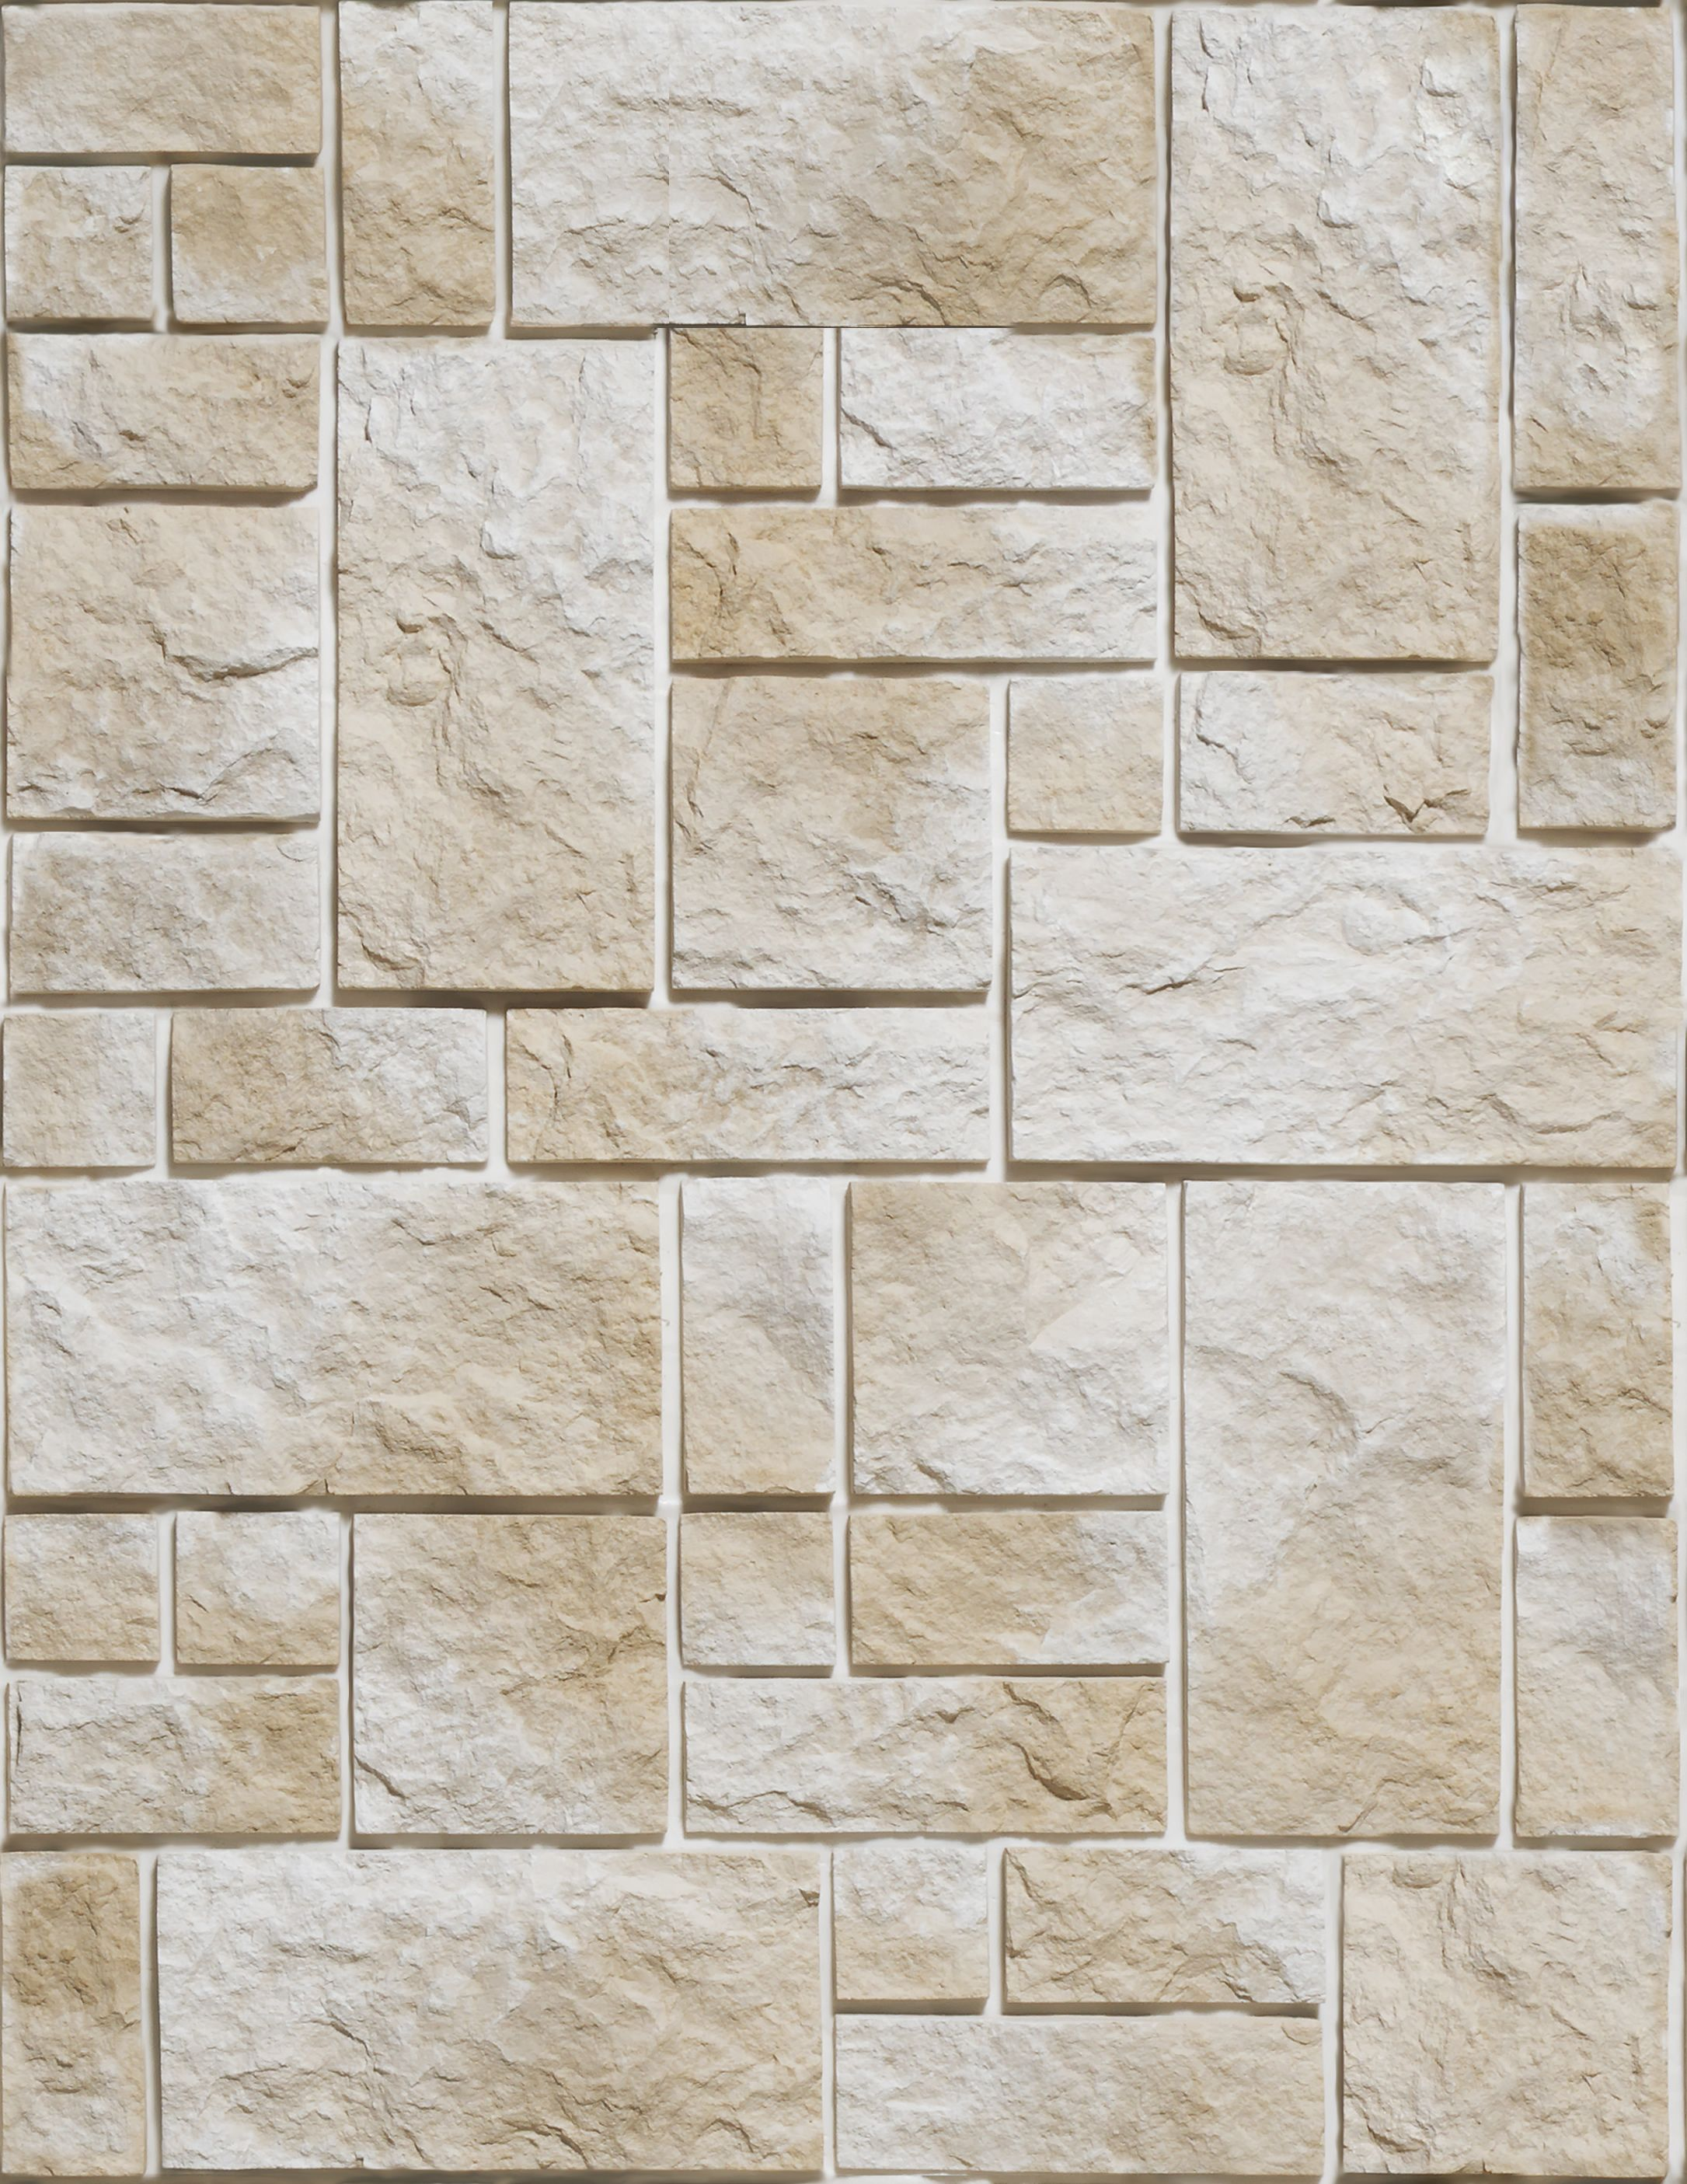 Slate Stone Elevation : Stone hewn tile texture wall download photo